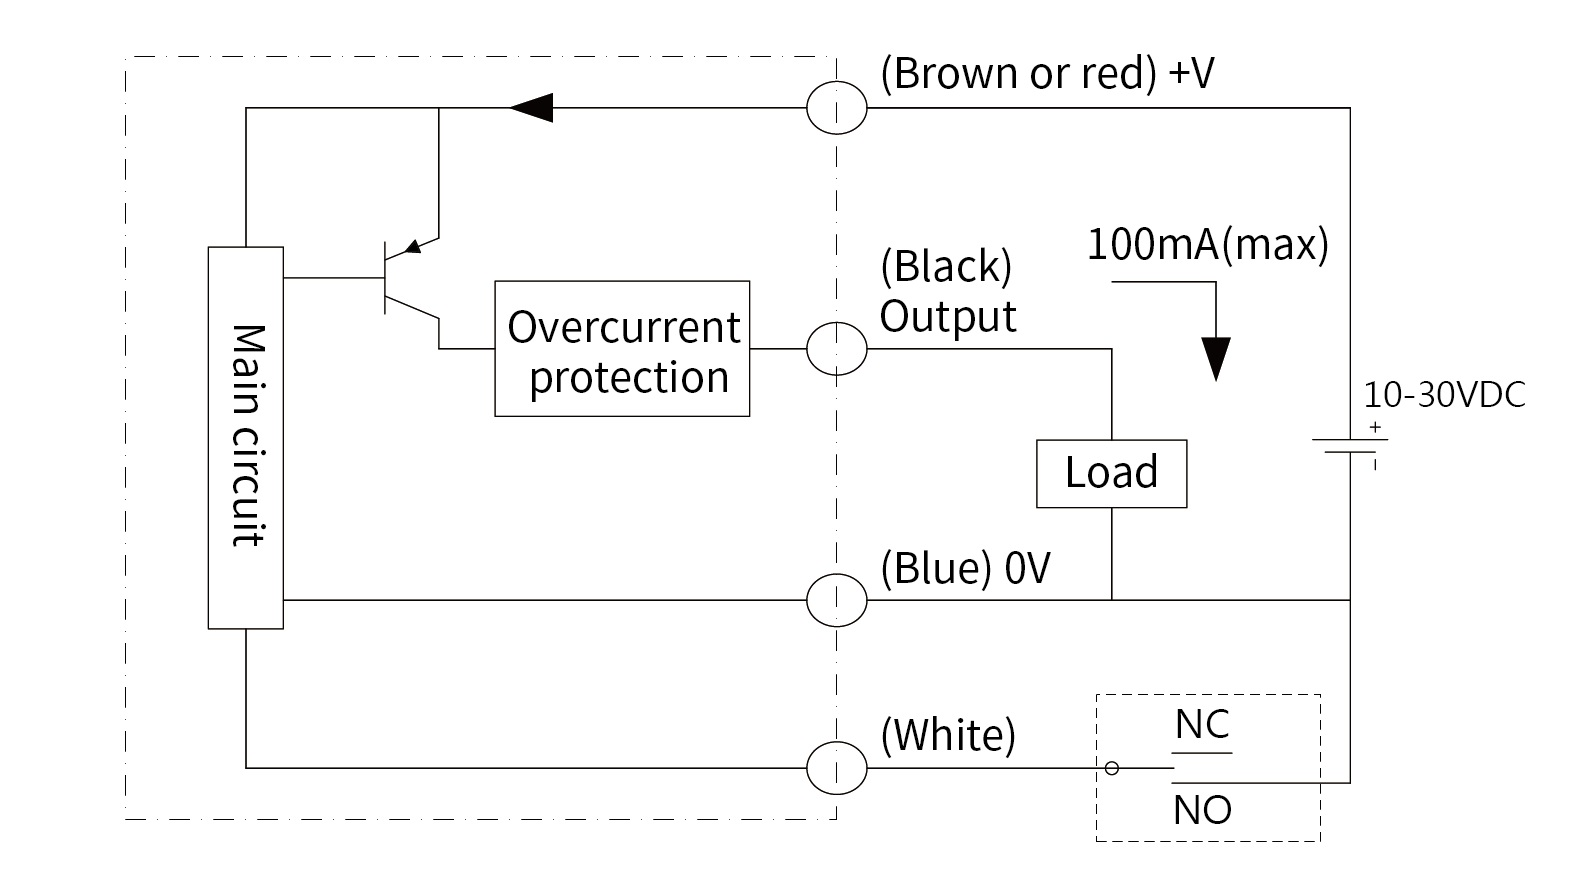 optical-liquid-level-switch-ss316l-wiring-diagram-pnp-open-collector-output